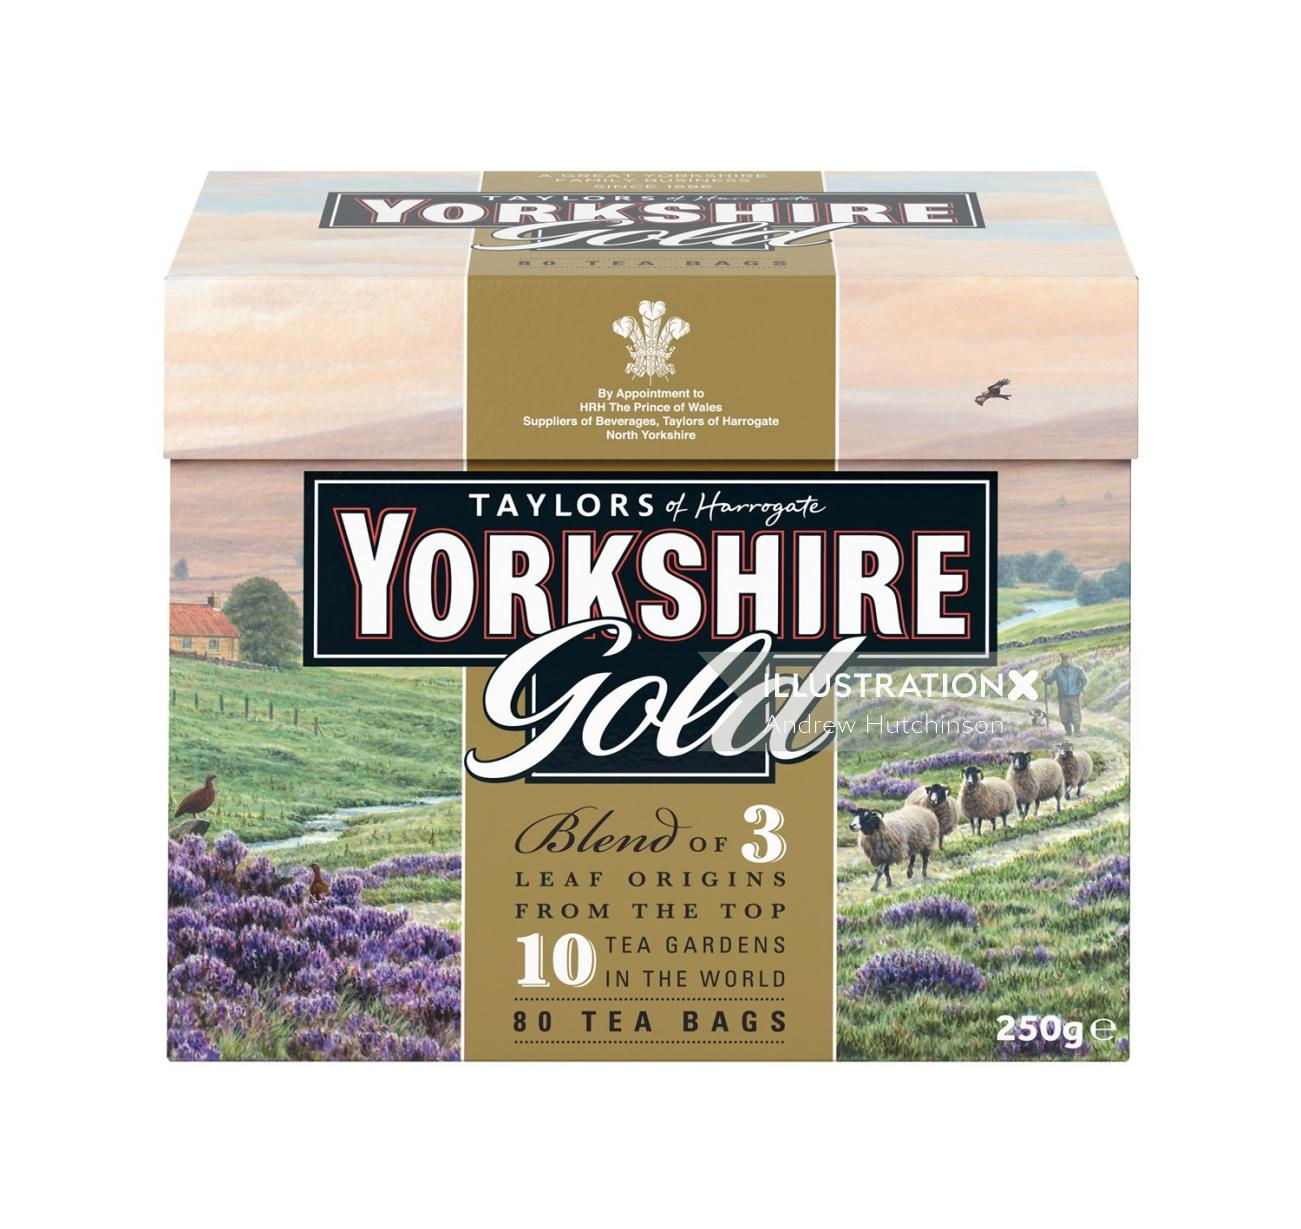 Yorkshire Tea packaging illustration, Farmland Images © Andrew Hutchinson